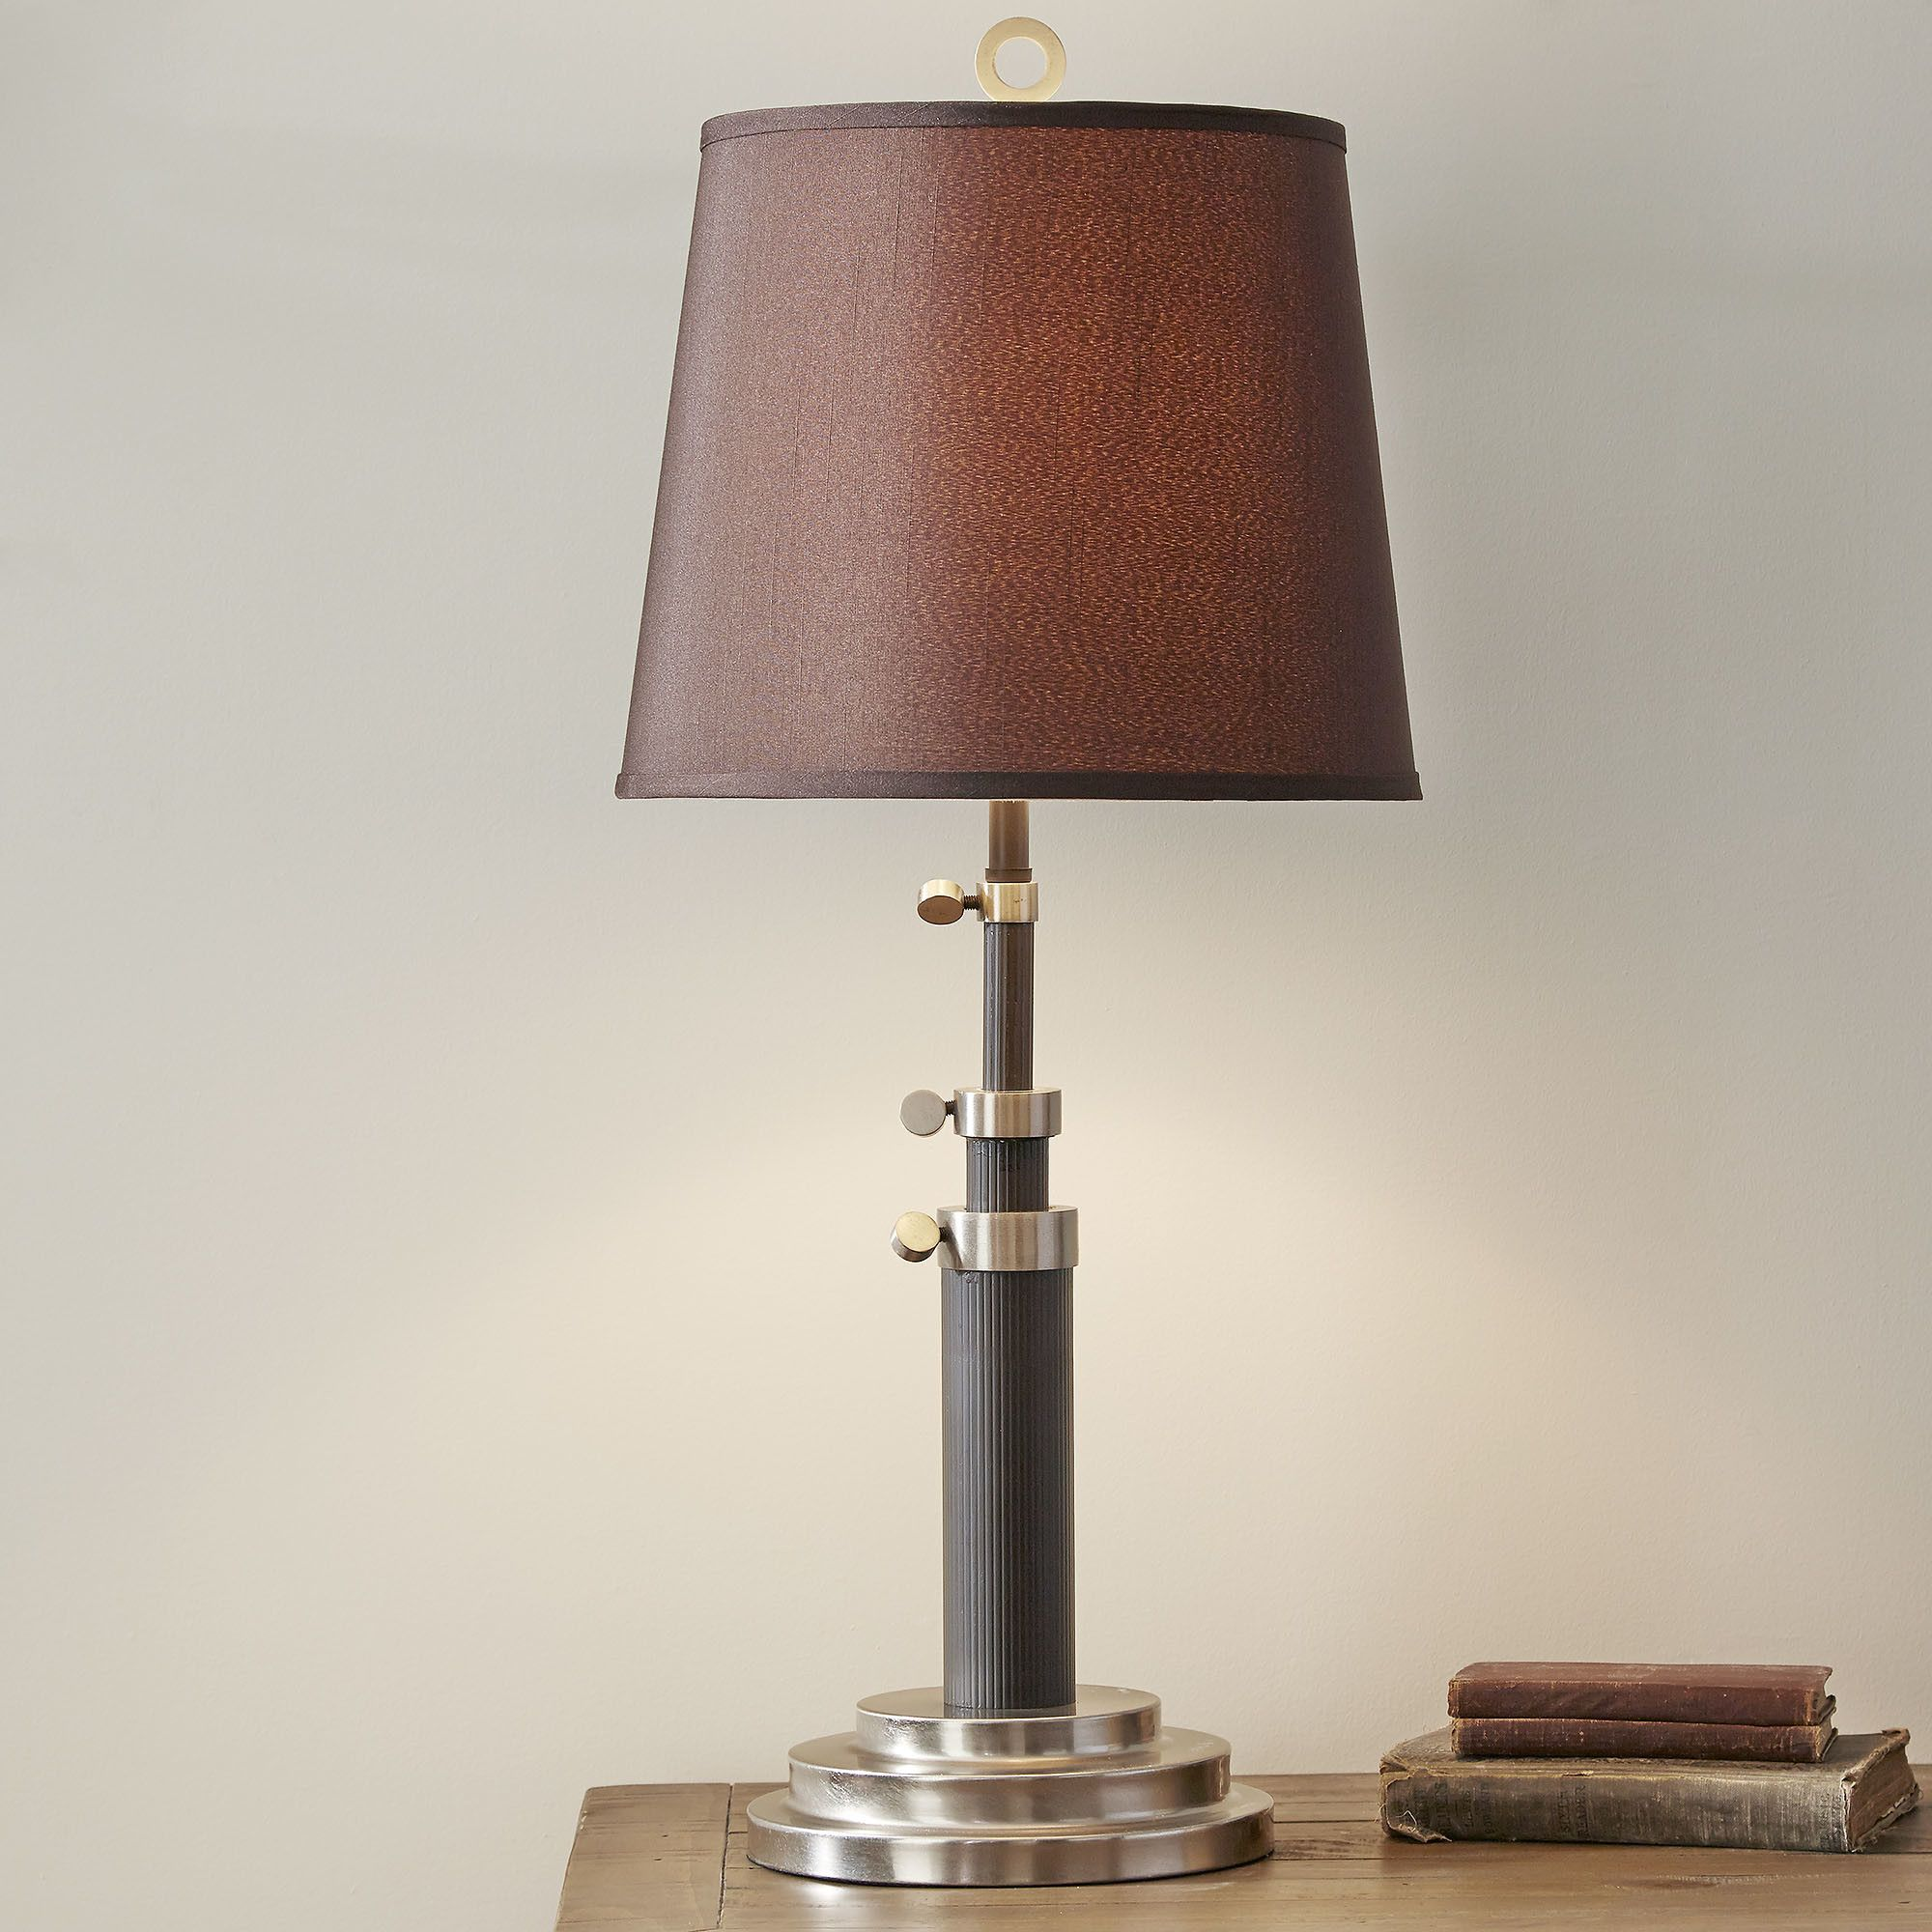 Cousteau Table Lamp Lamp Table Lamp Traditional Furniture